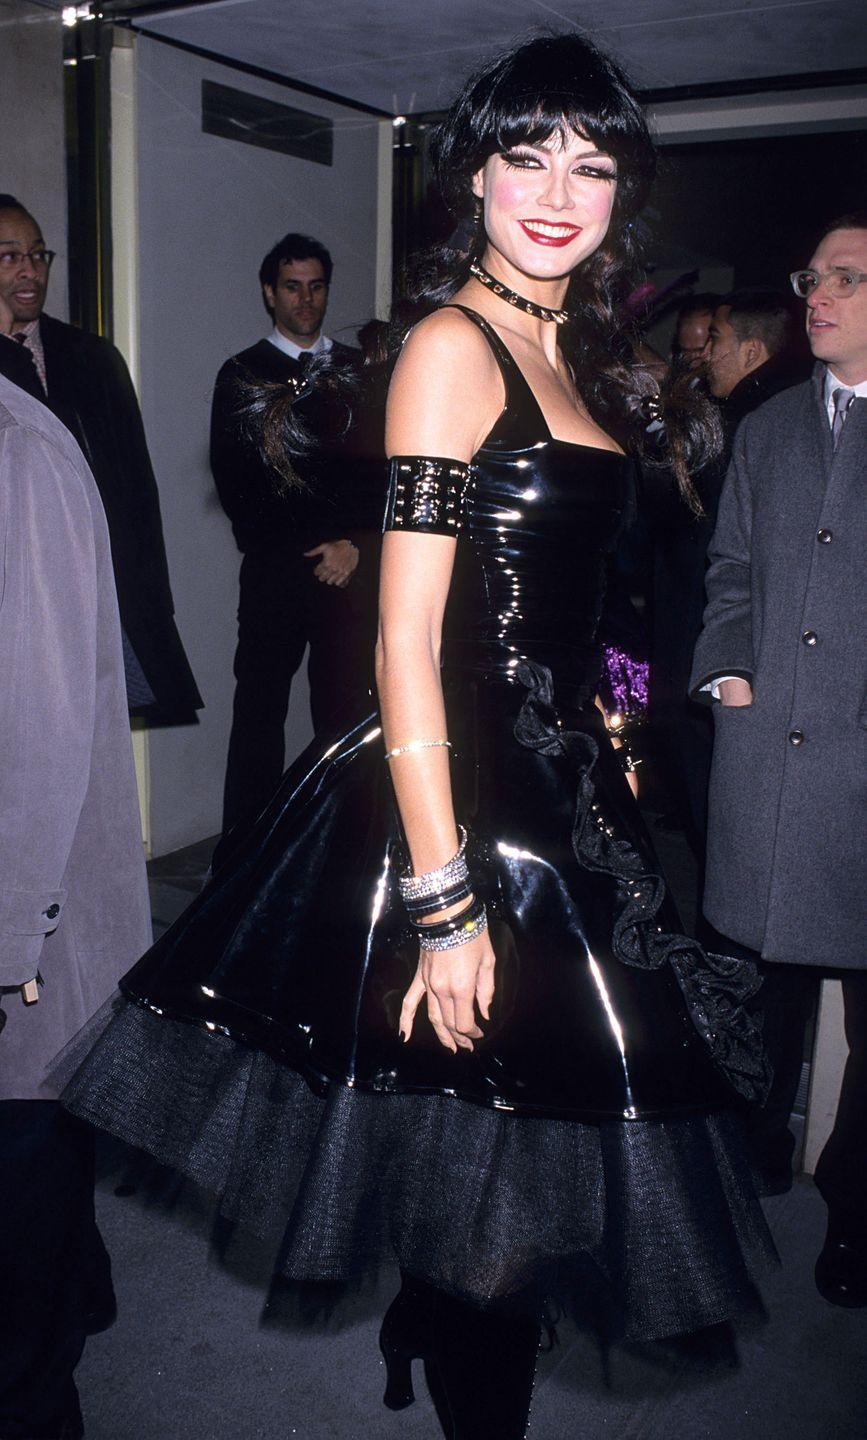 <p>The model wore an SNM-inspired black dress for one of her earliest Halloween bashes with two Pippi Longstocking braids</p>